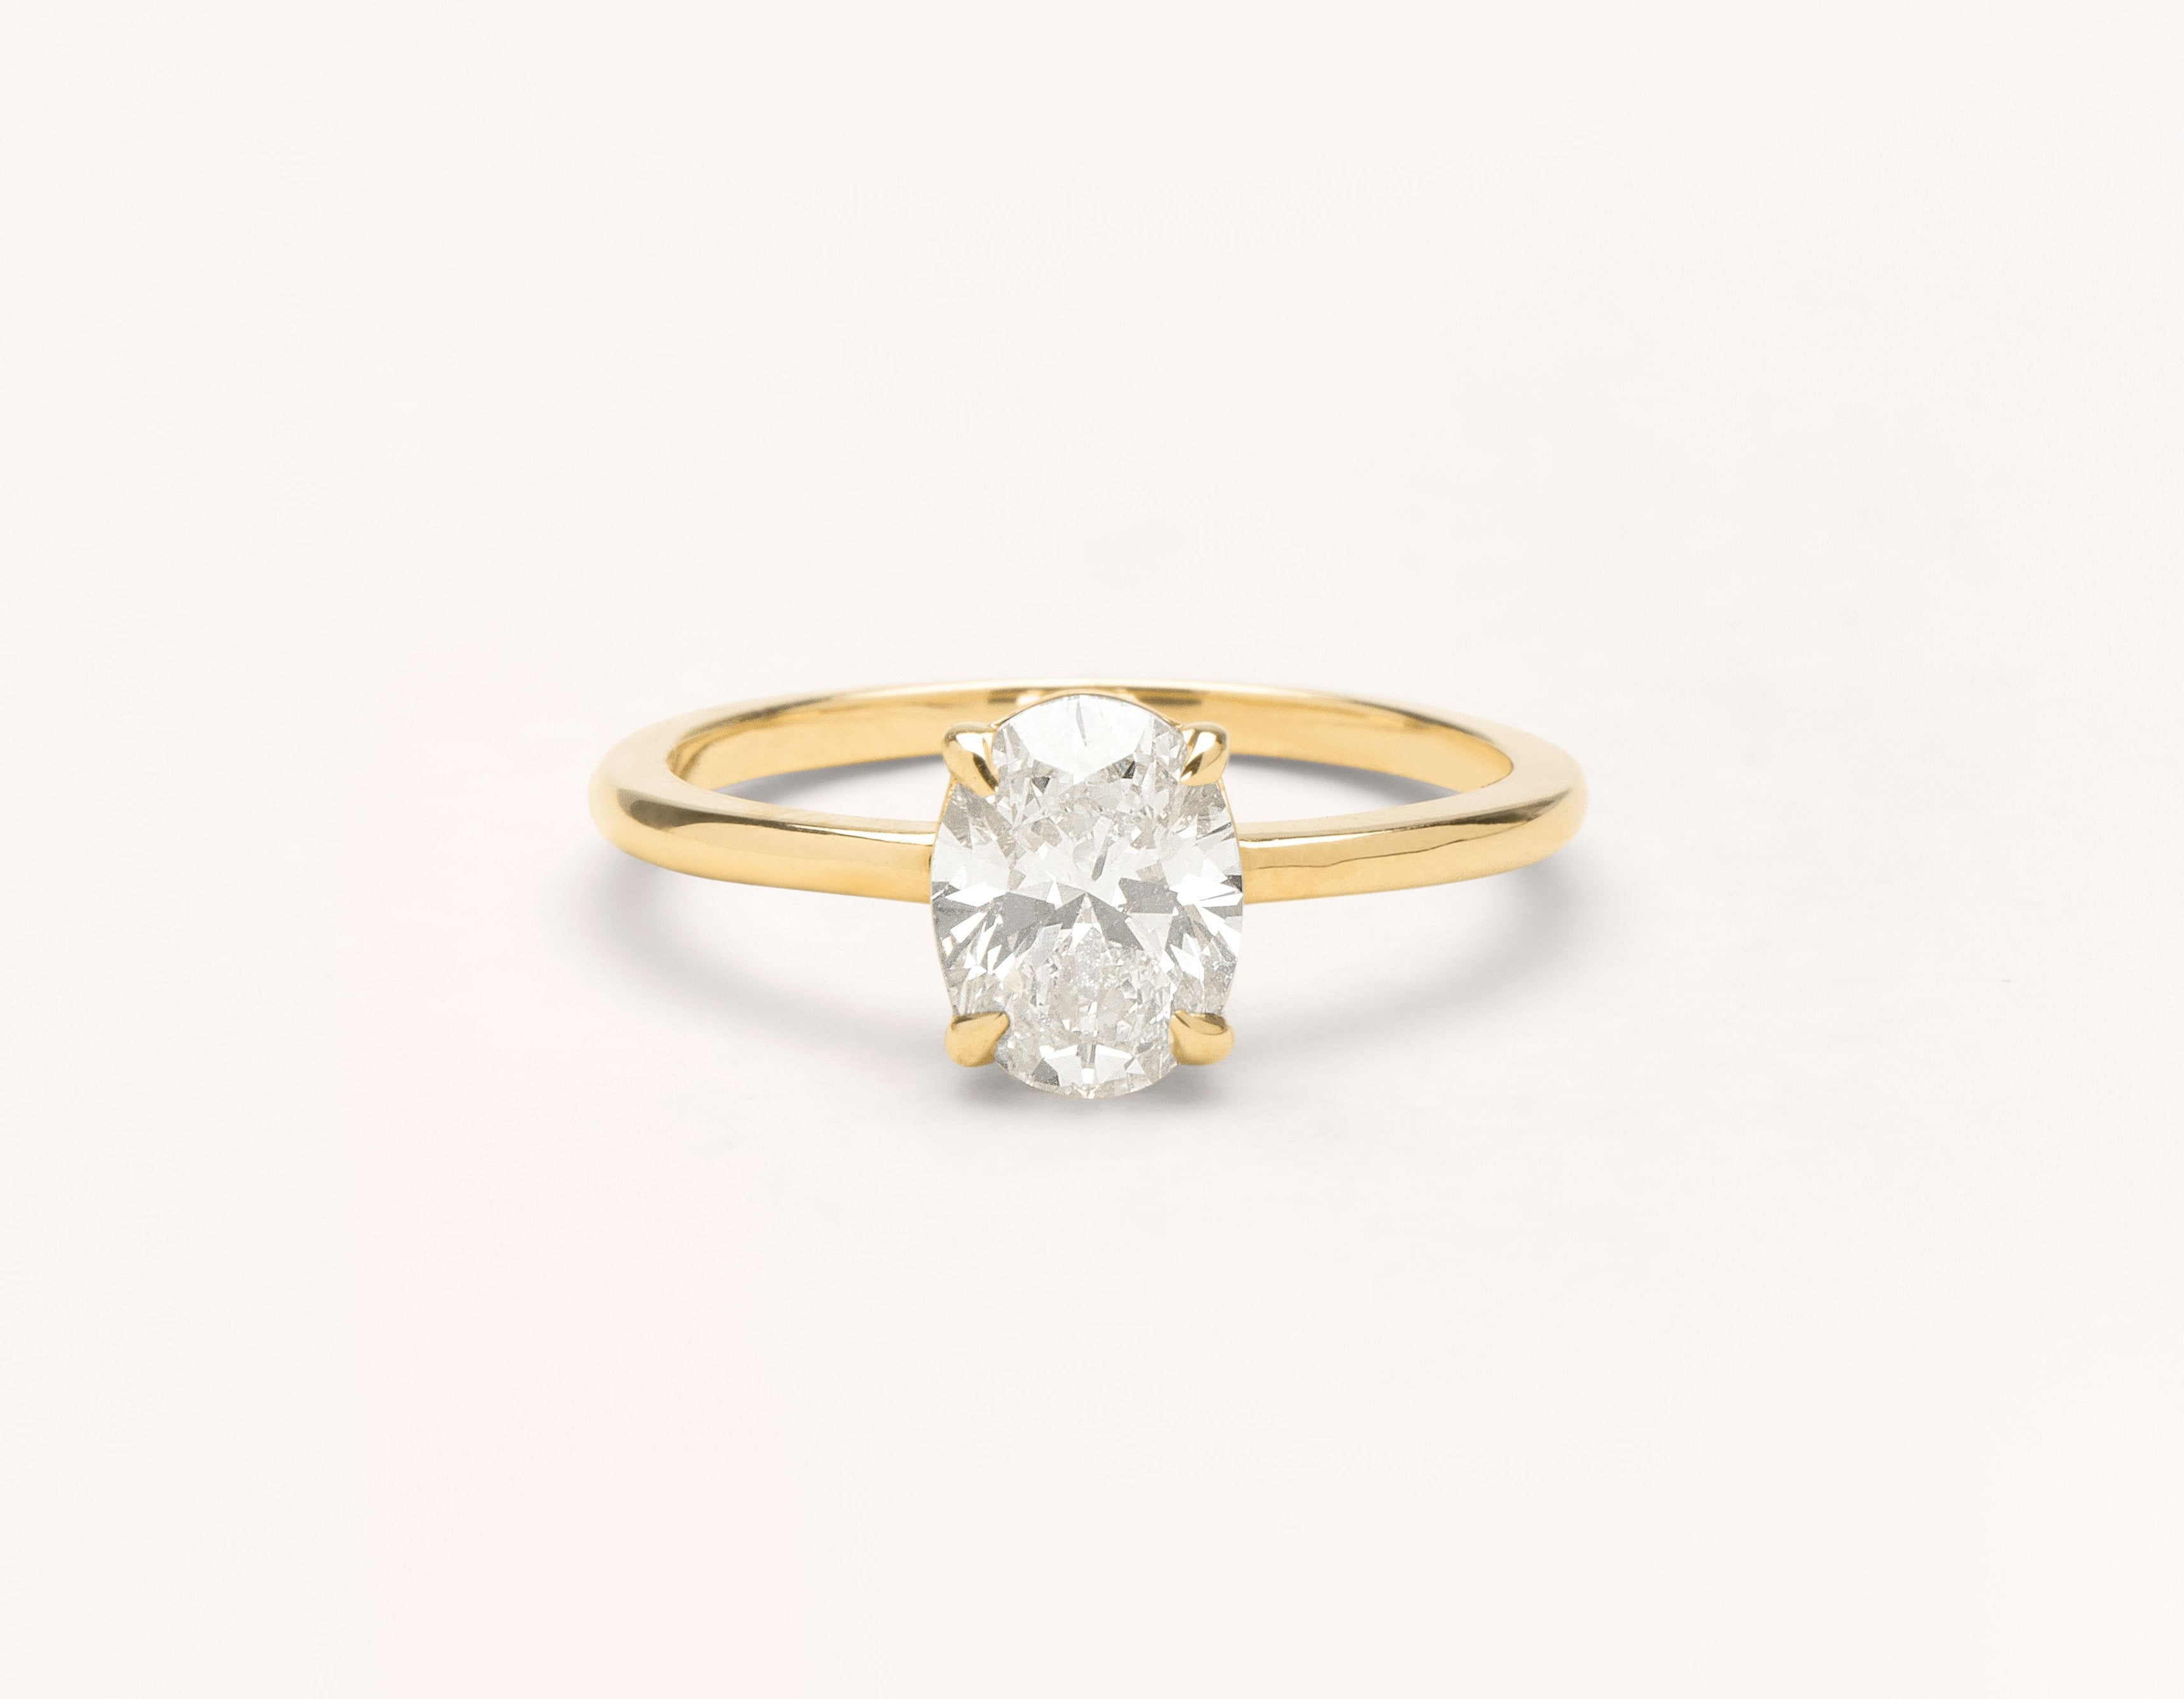 The Oval Engagement Ring 18k Yellow Gold Vrai Oro Wedding